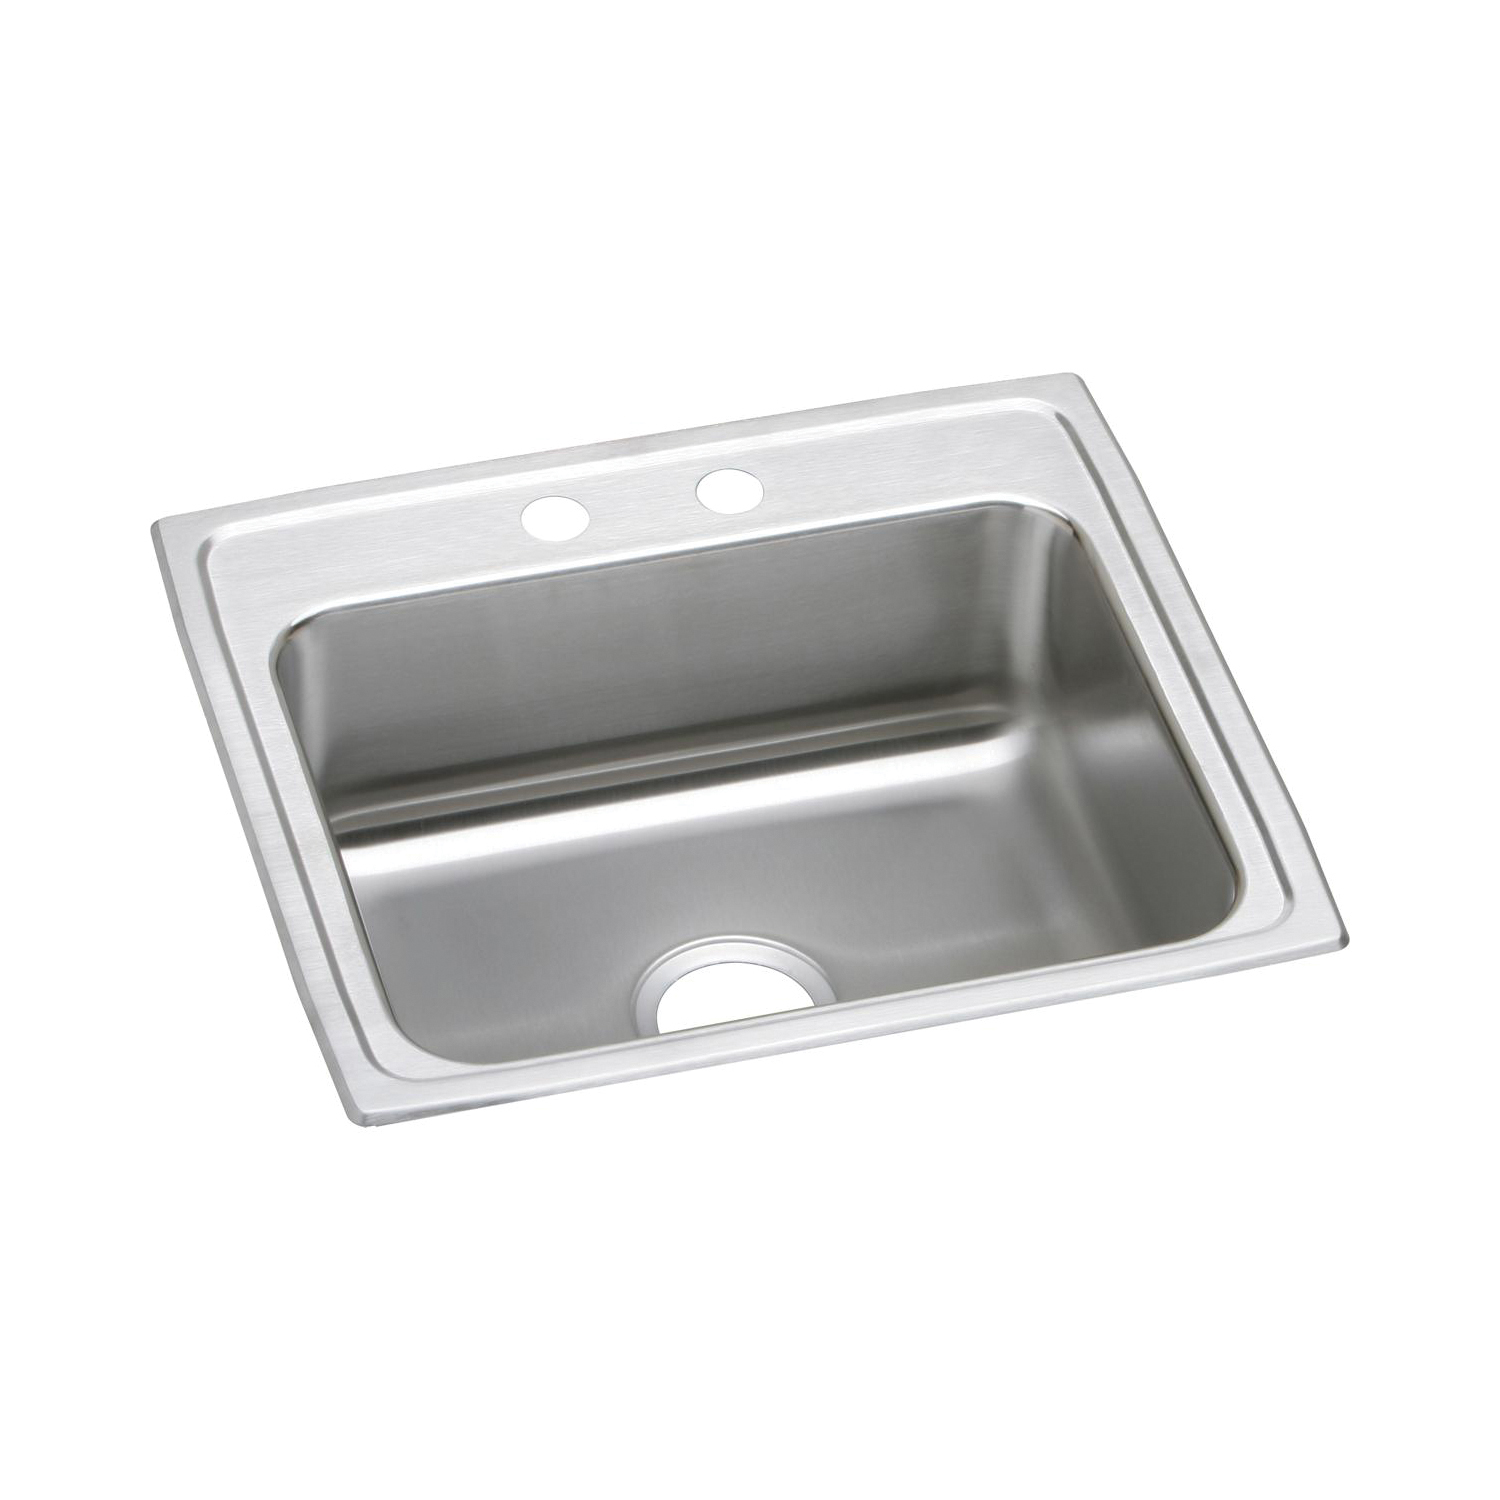 Elkay® LRAD2219653 Gourmet Kitchen Sink, Rectangular, 3 Faucet Holes, 22 in W x 19-1/2 in D x 6-1/2 in H, Top Mount, Stainless Steel, Lustertone, Domestic